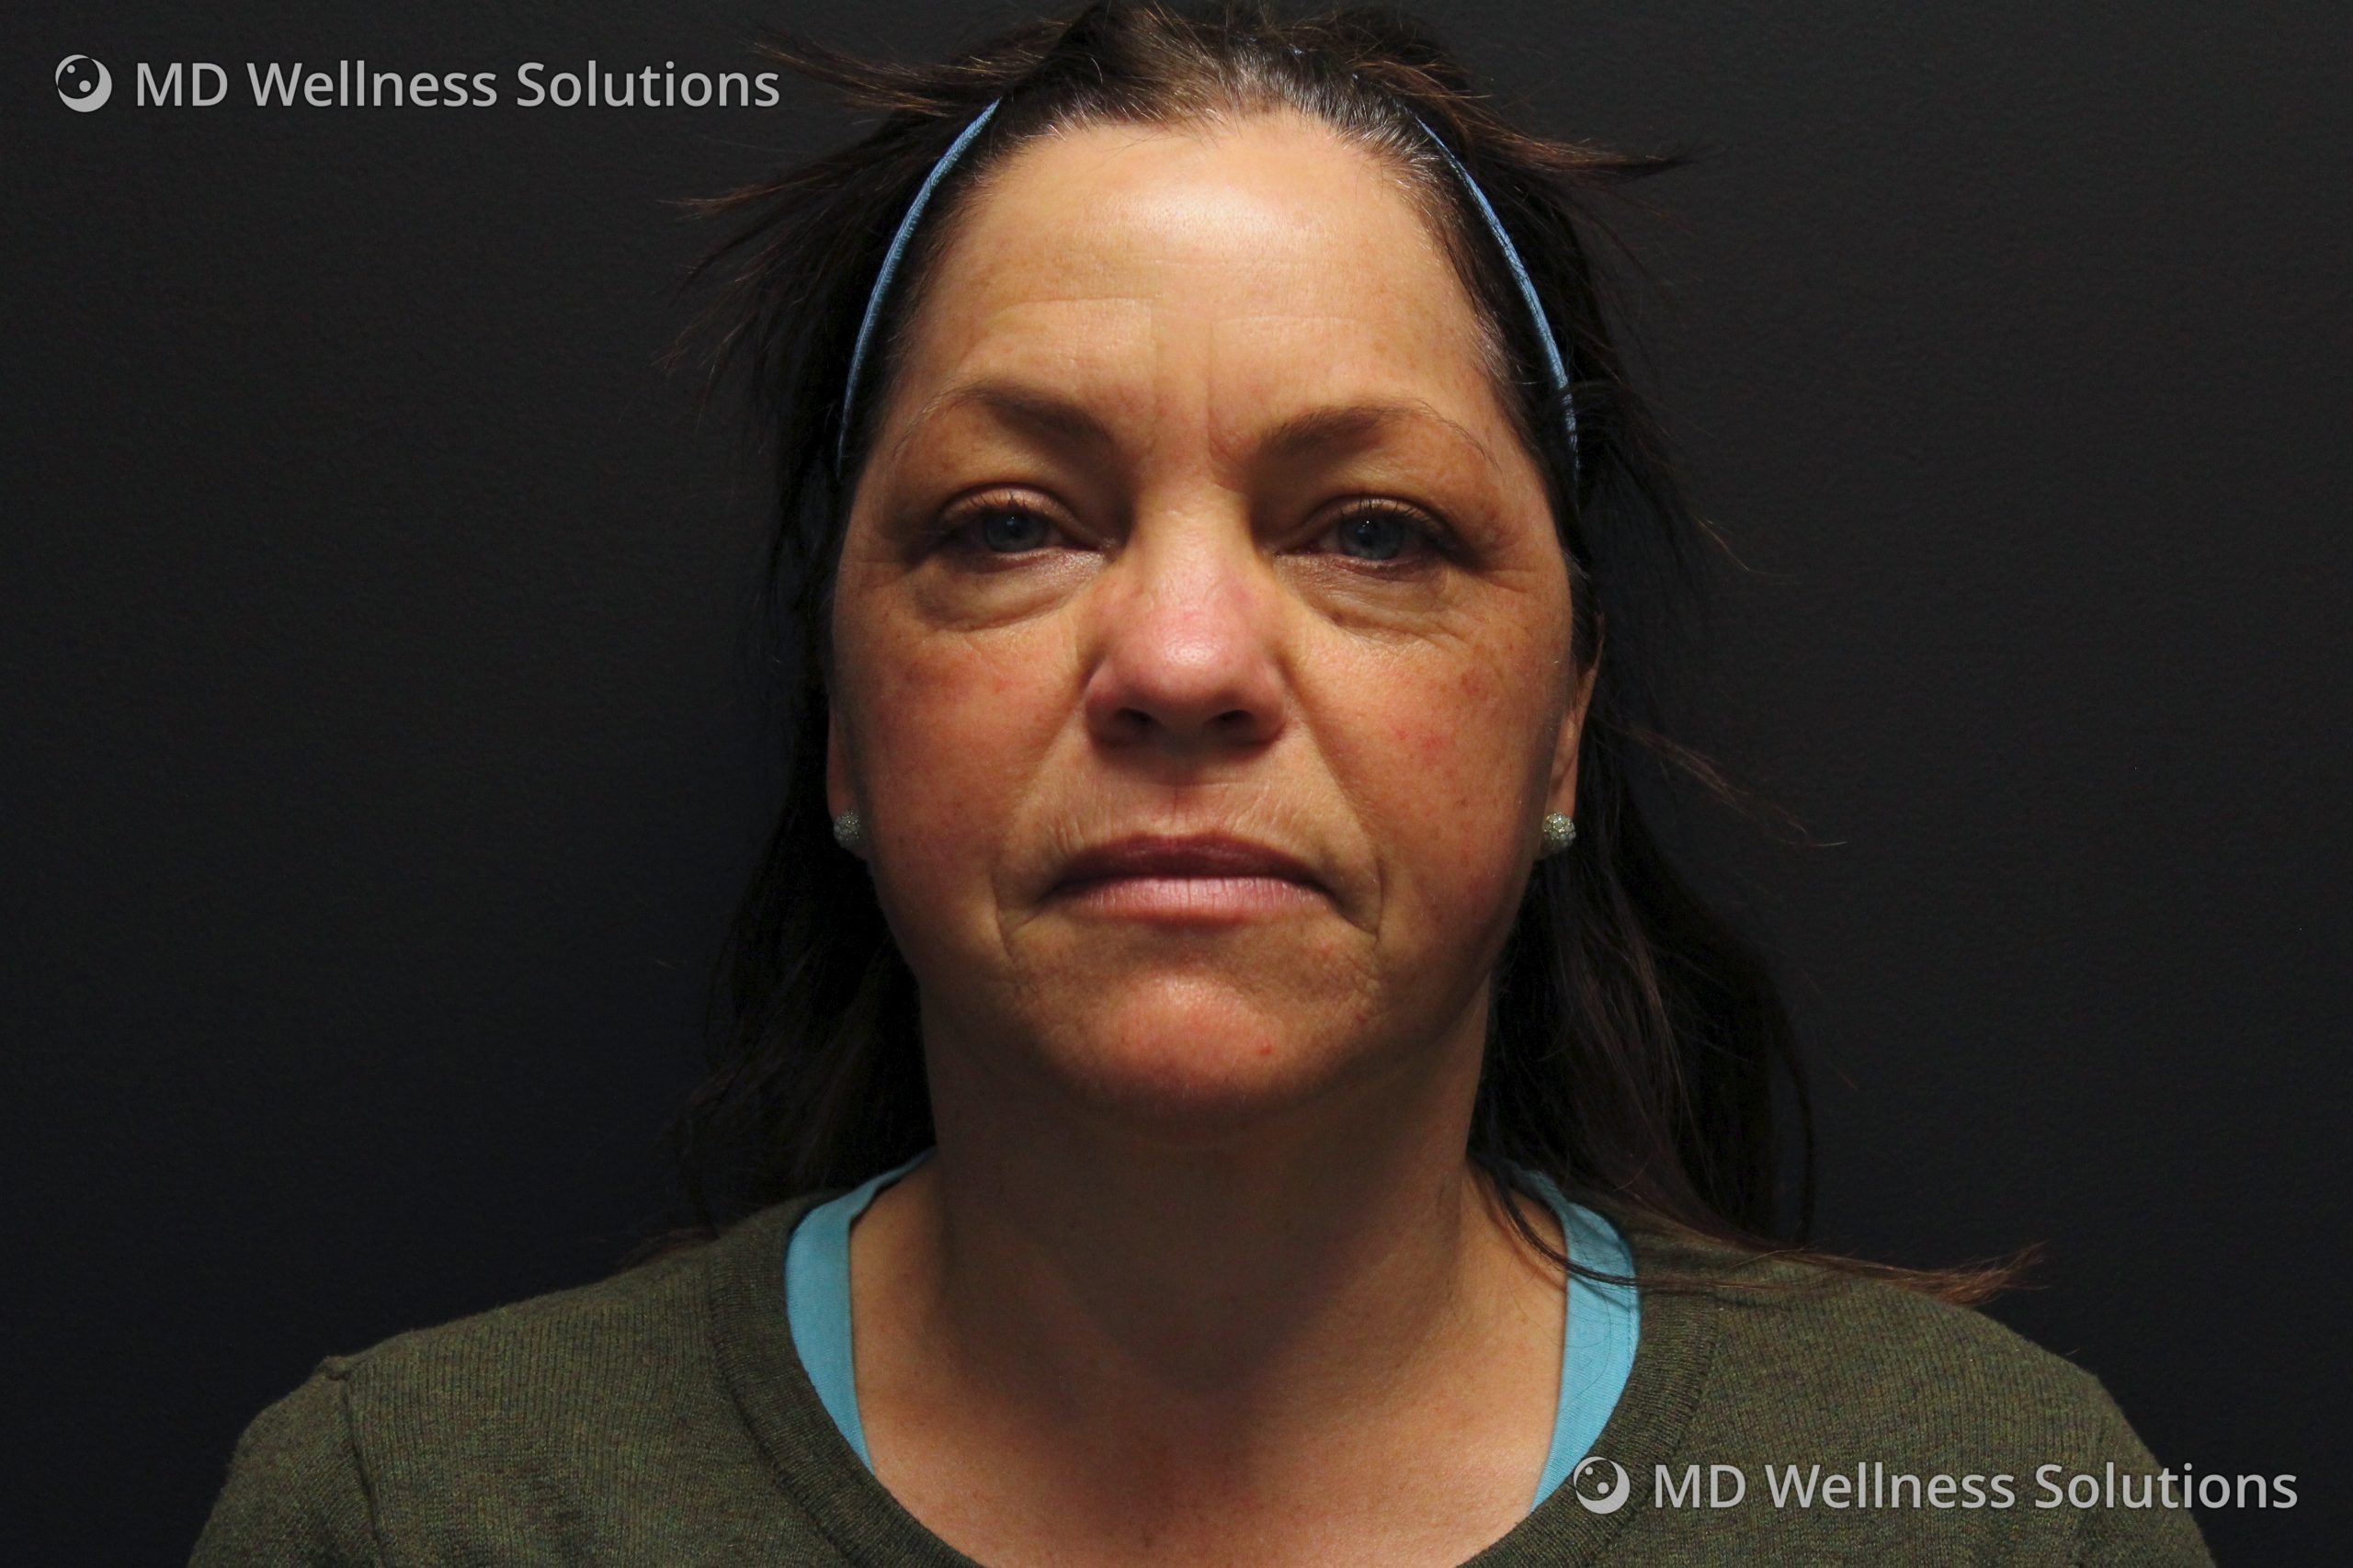 45-54 year old woman before dermal filler treatment